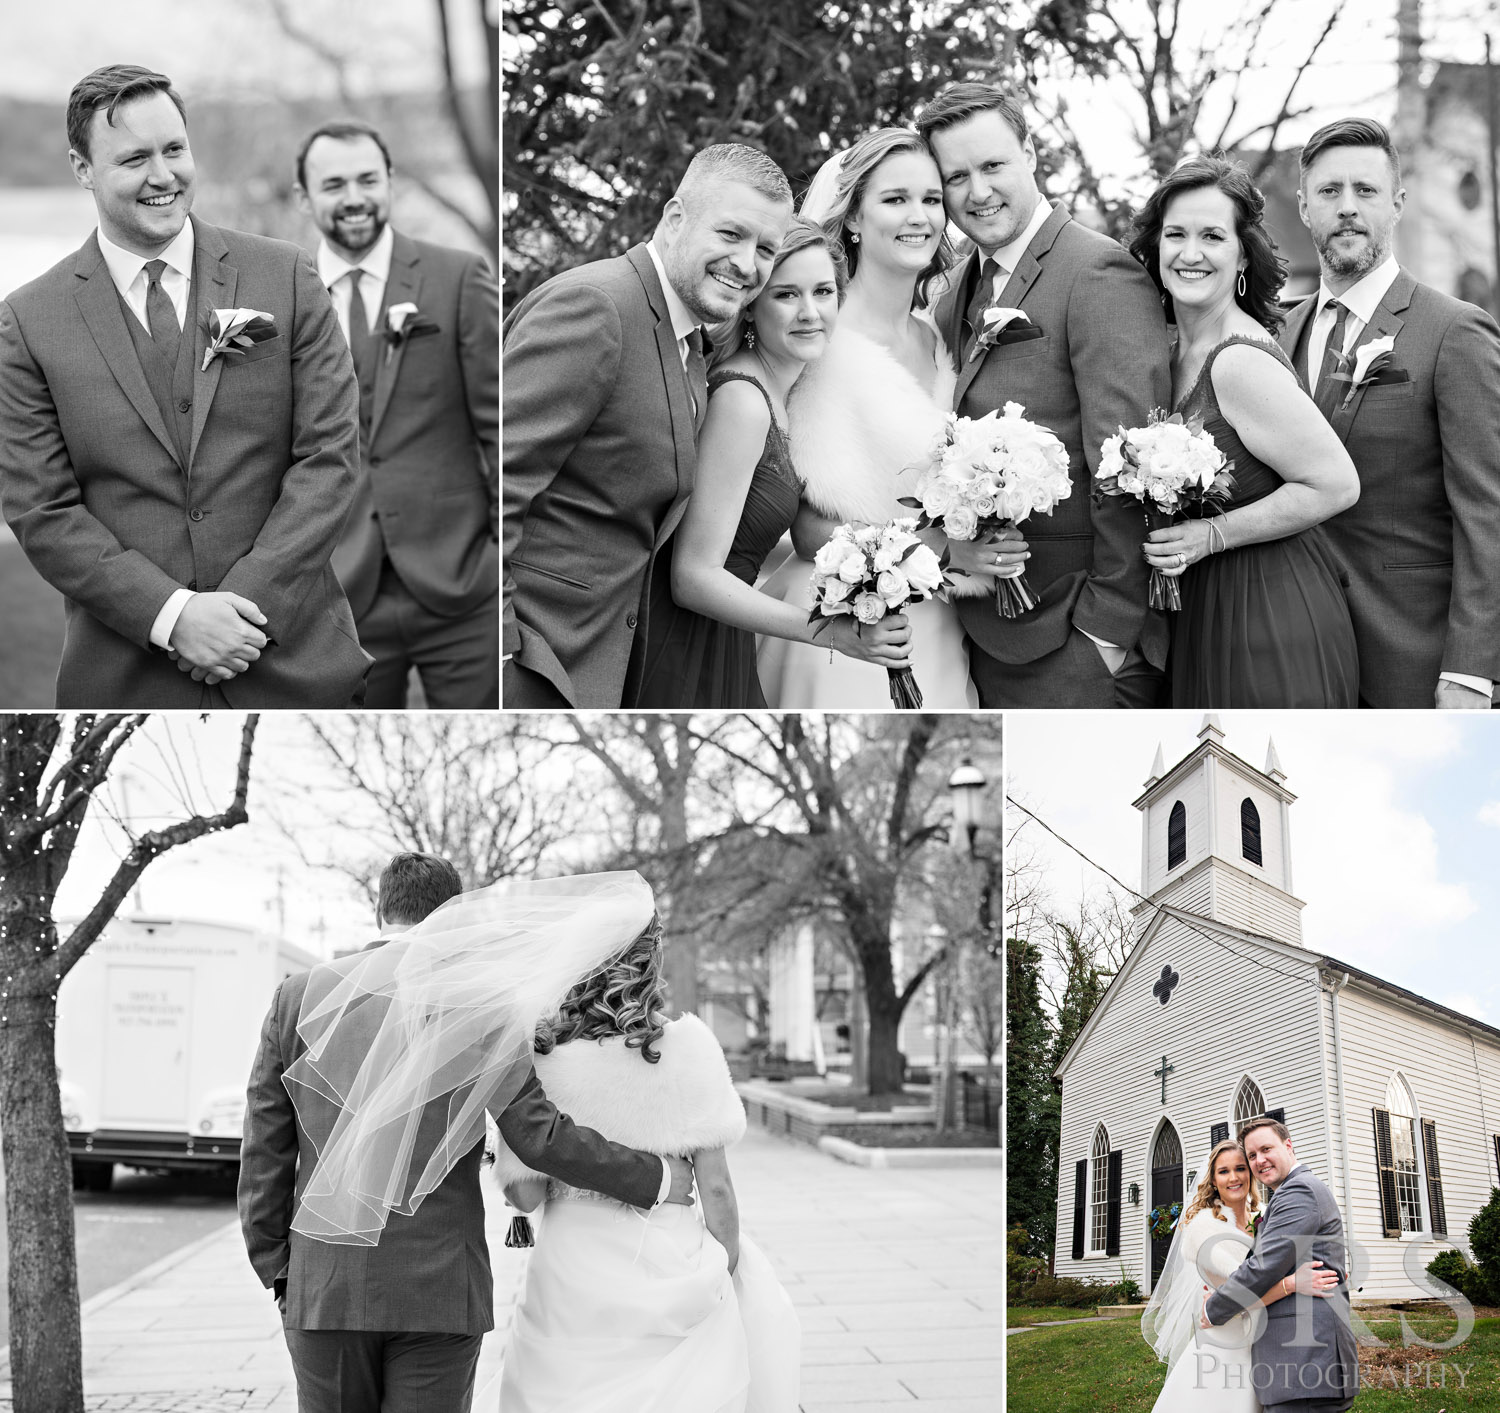 09_srs_photography_sara_stadtmiller_asbury_park_wedding_photography_nj_wedding_photographer_monmouth_county_wedding_photographer_christ_church_riverside_gardens_red_bank_wedding